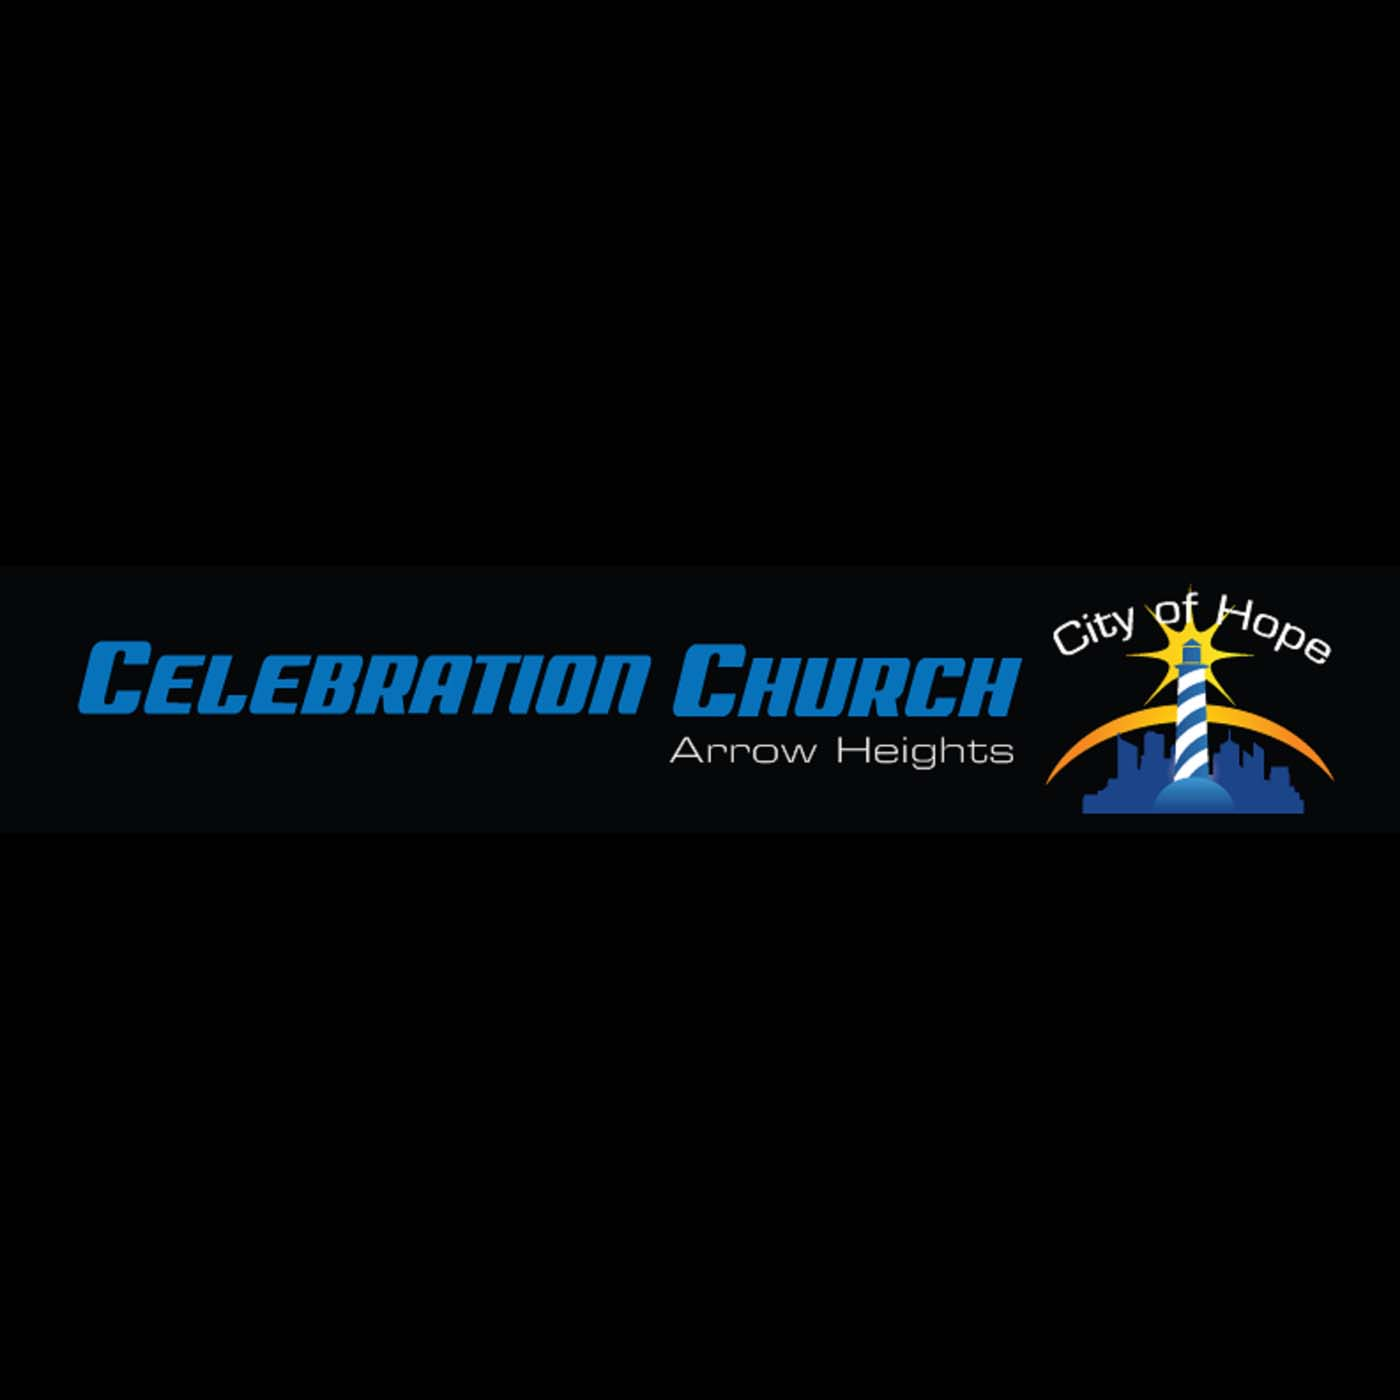 Celebration Church at Arrow Heights